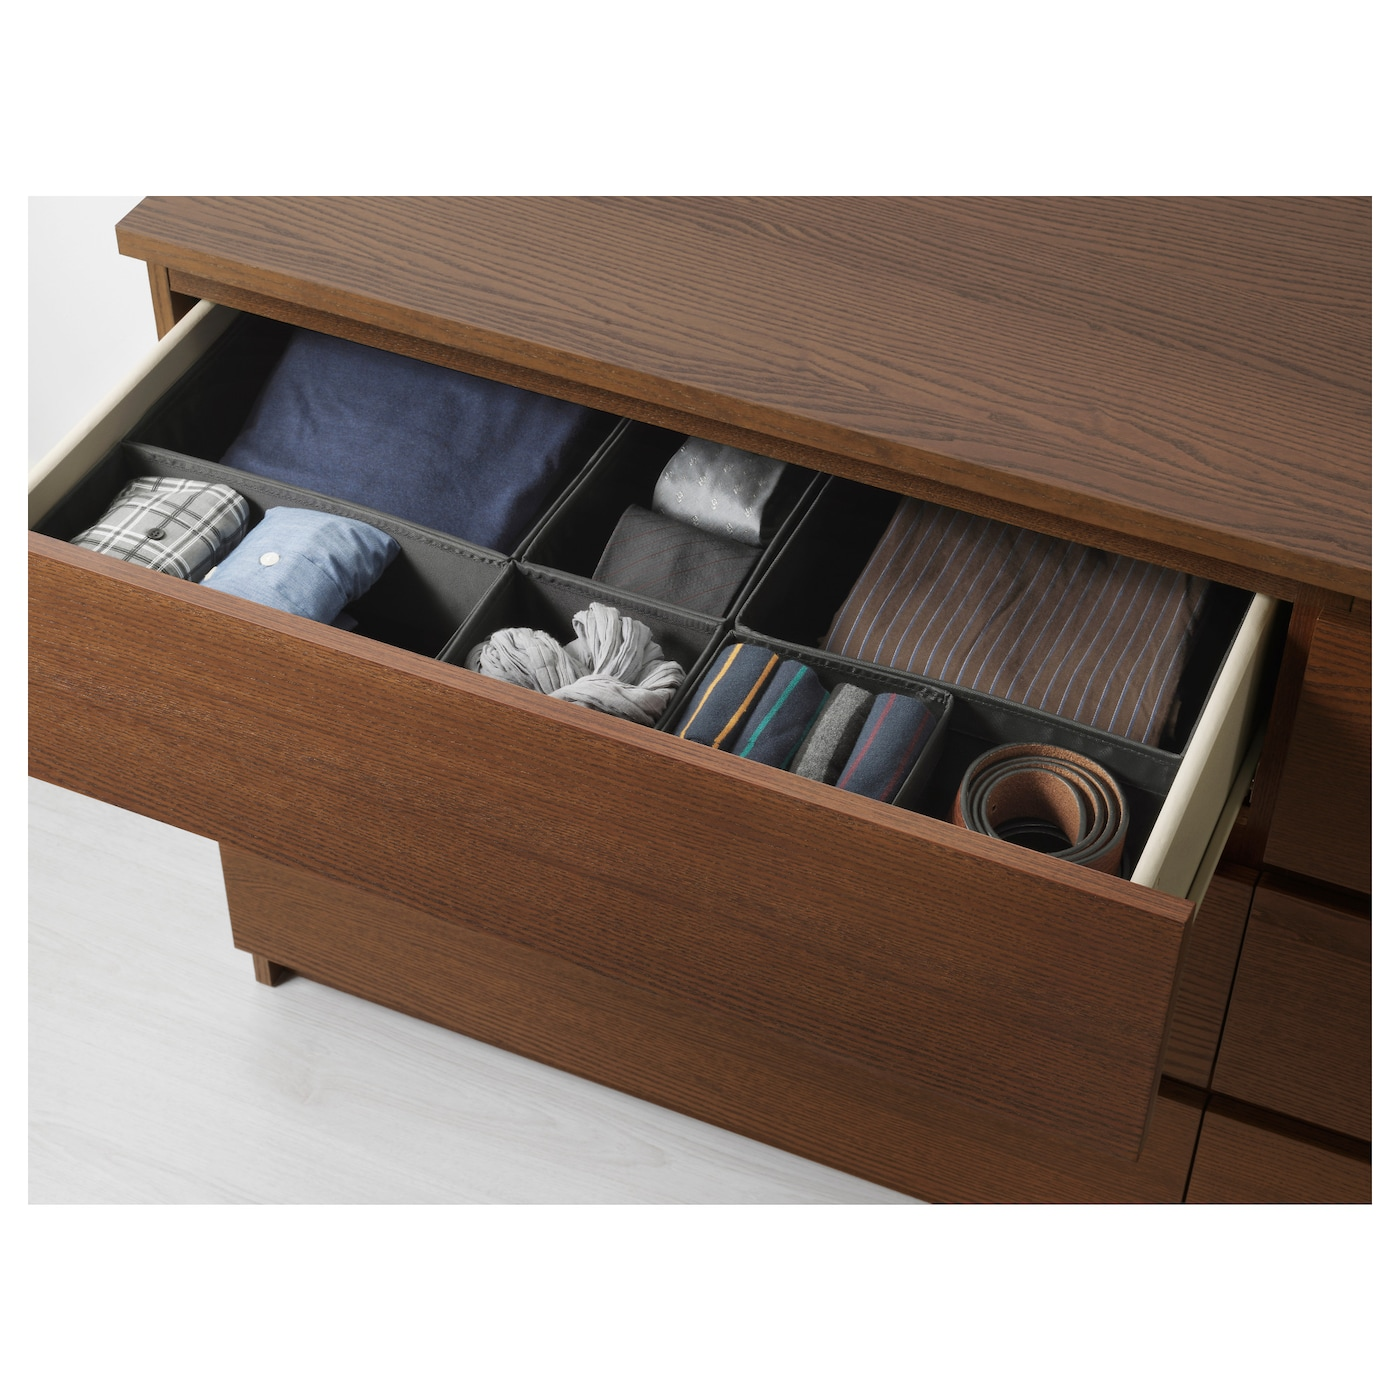 malm chest of 6 drawers brown stained ash veneer 160x78 cm. Black Bedroom Furniture Sets. Home Design Ideas